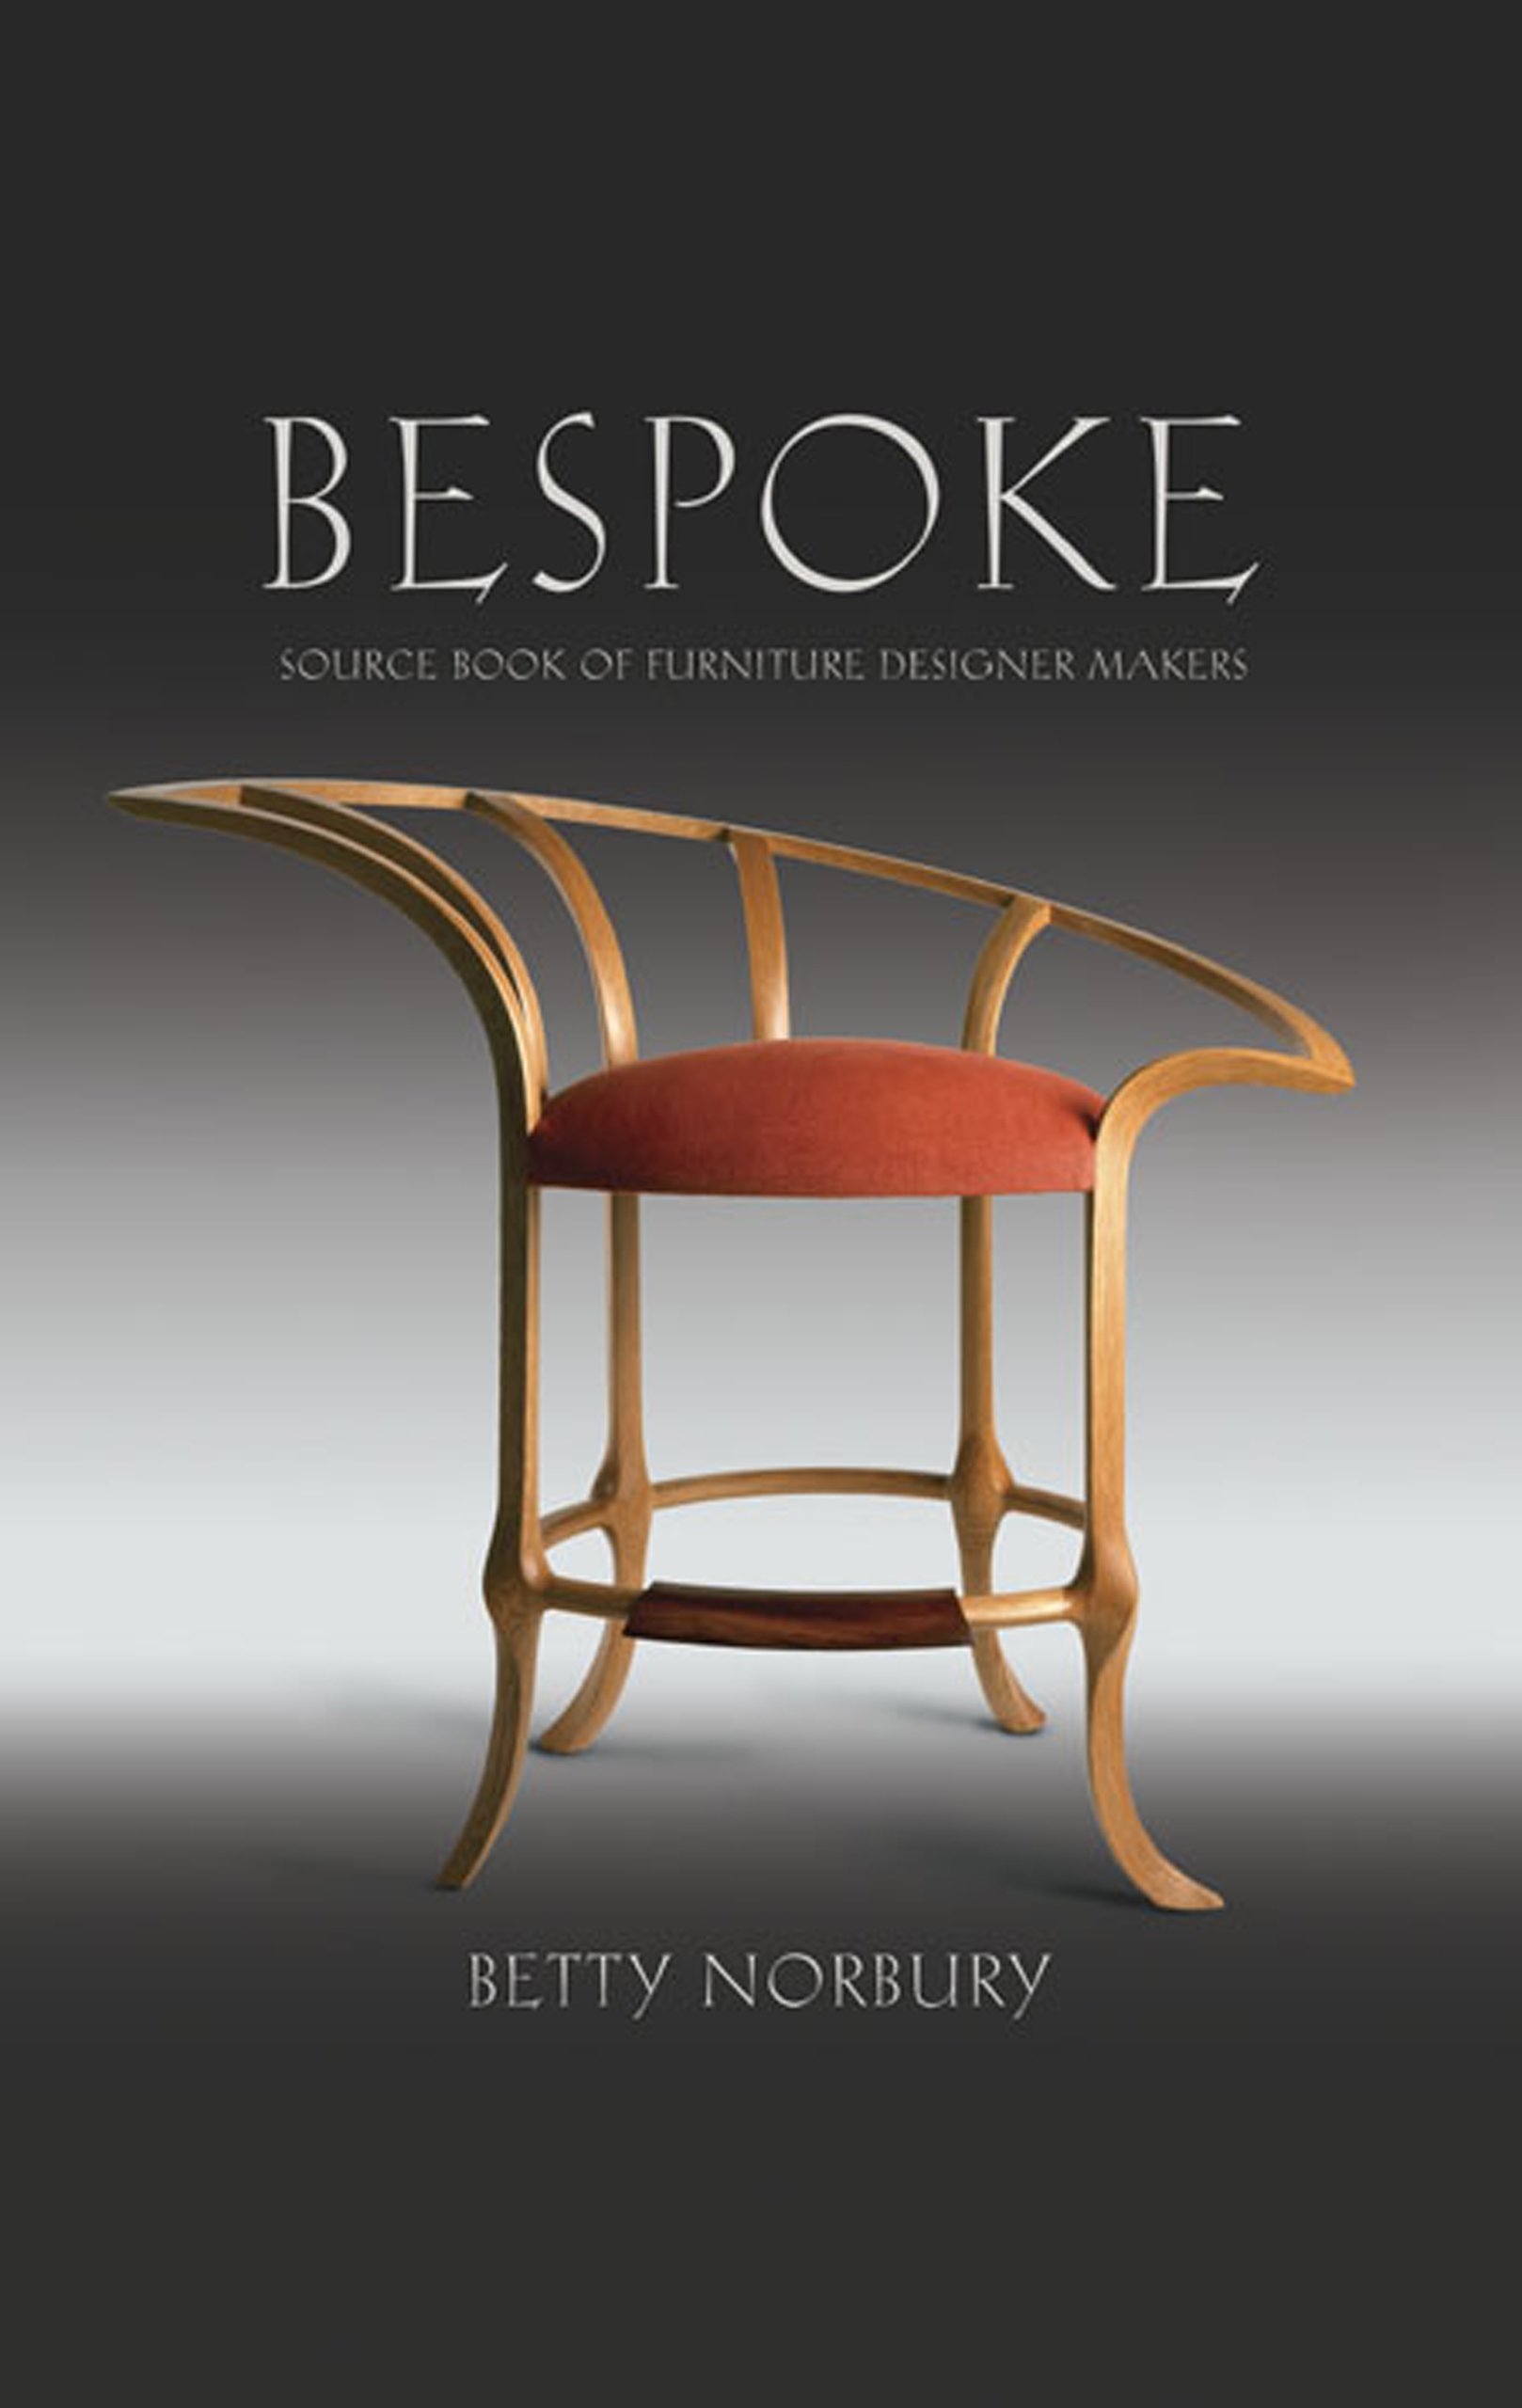 Bespoke: Source Book of Furniture Designer Makers